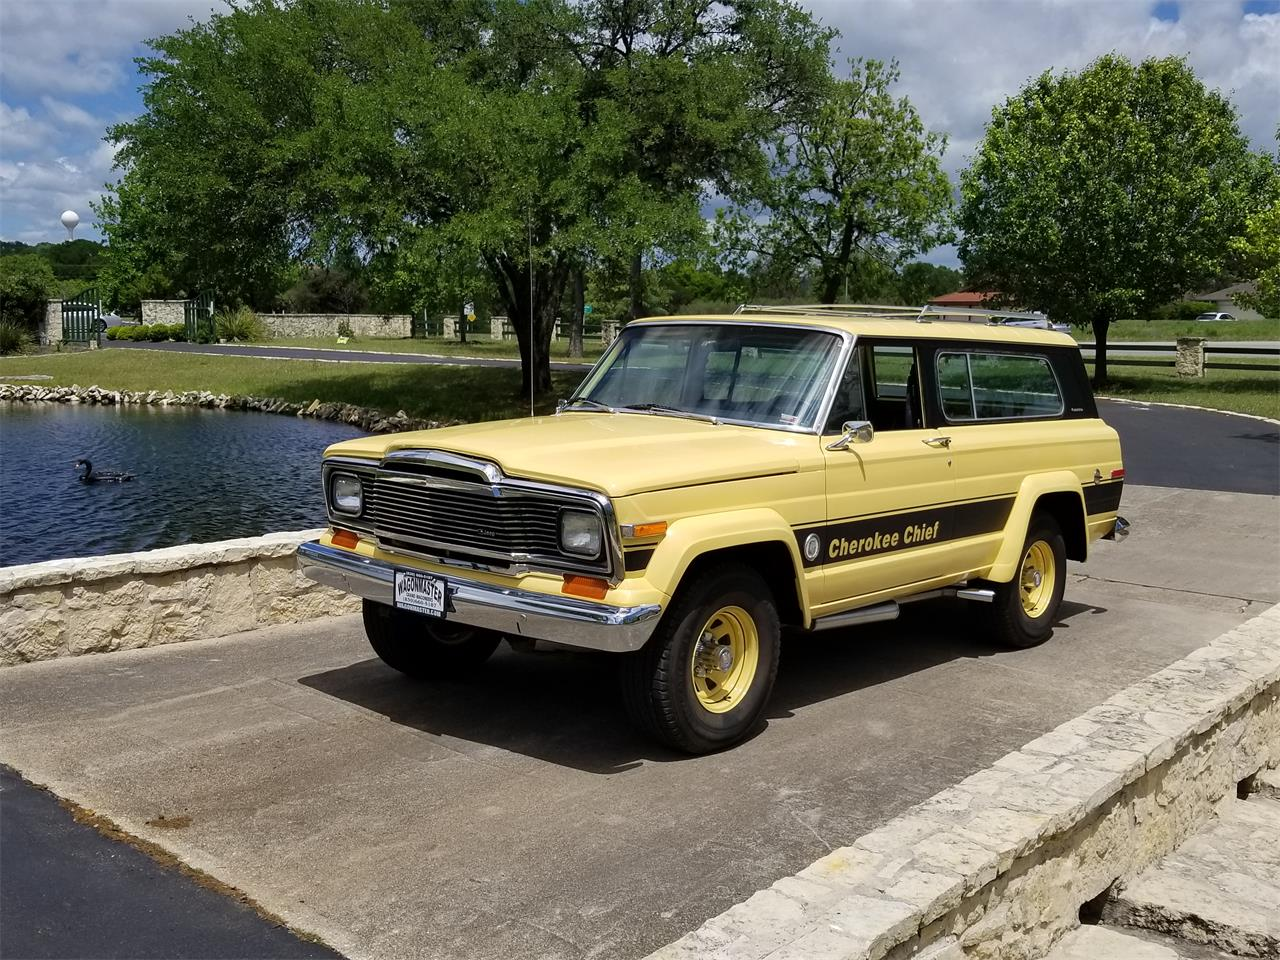 1979 Jeep Cherokee Chief for sale in Kerrville, TX – photo 5